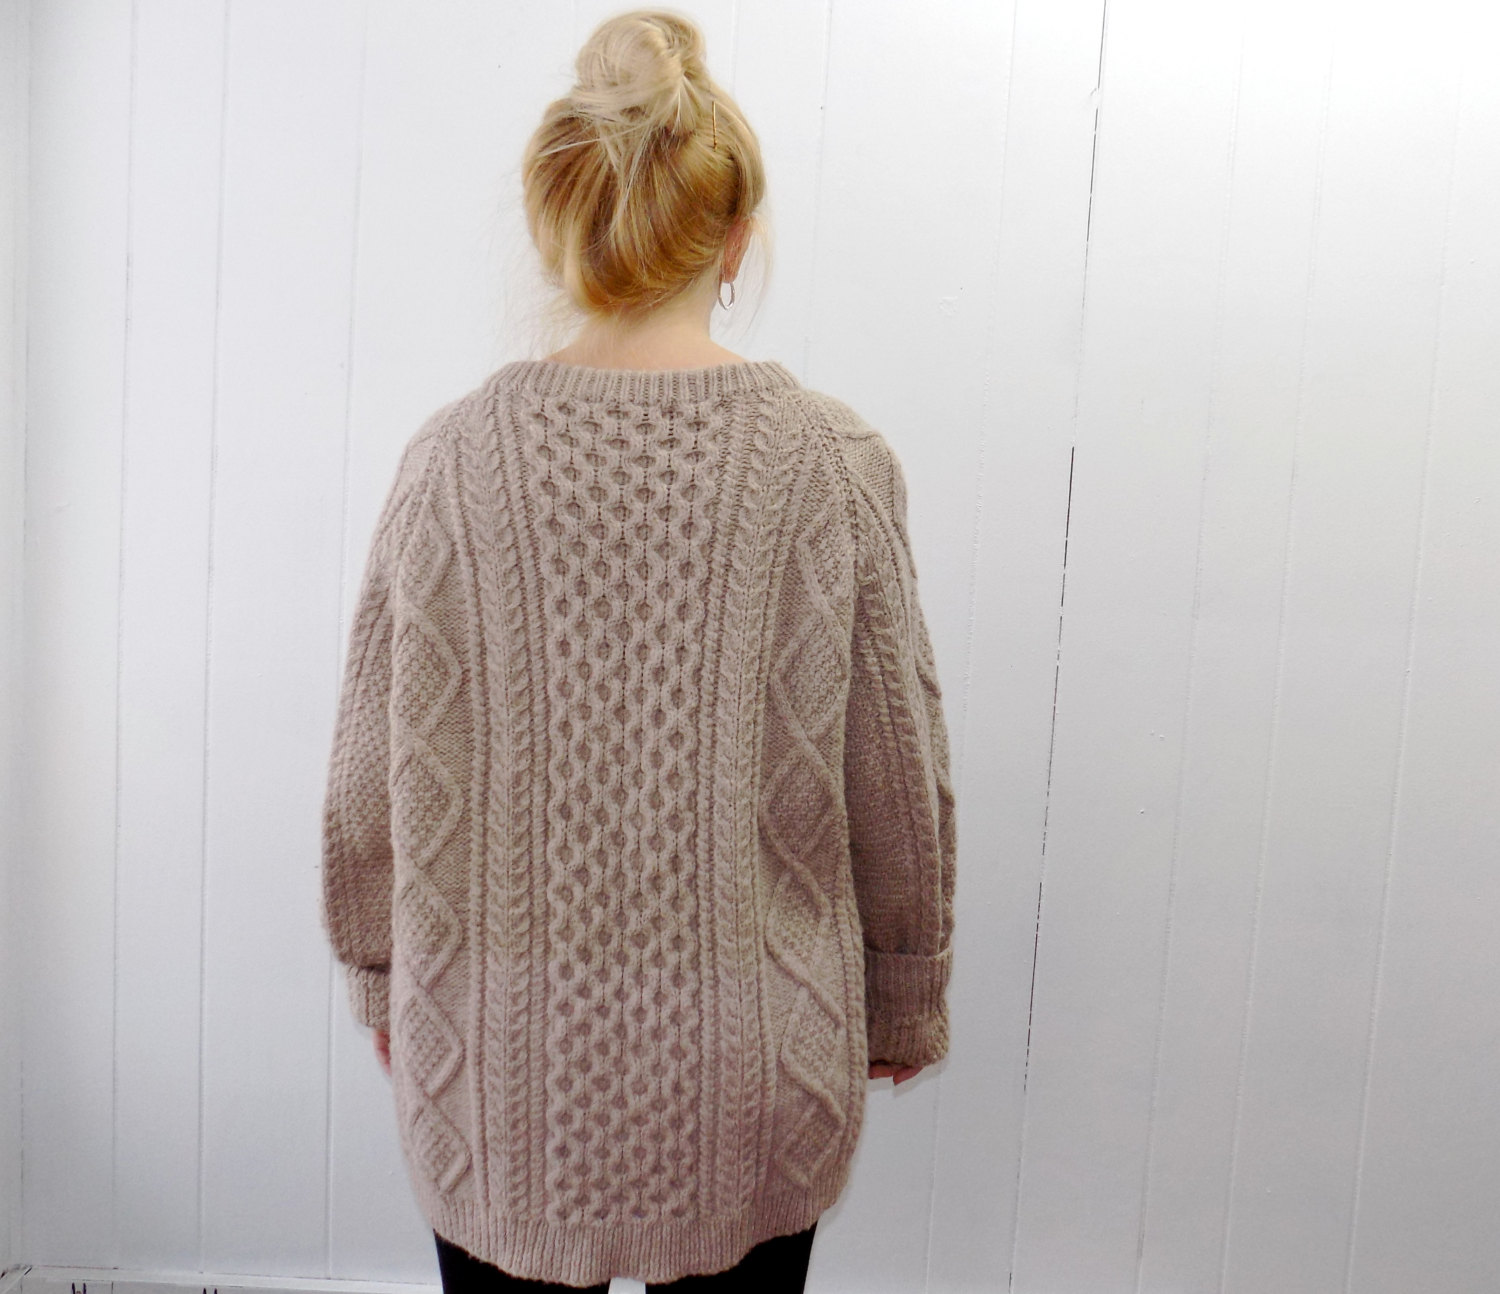 Vintage Cable Knit Tan Hand Knit Sweater Large